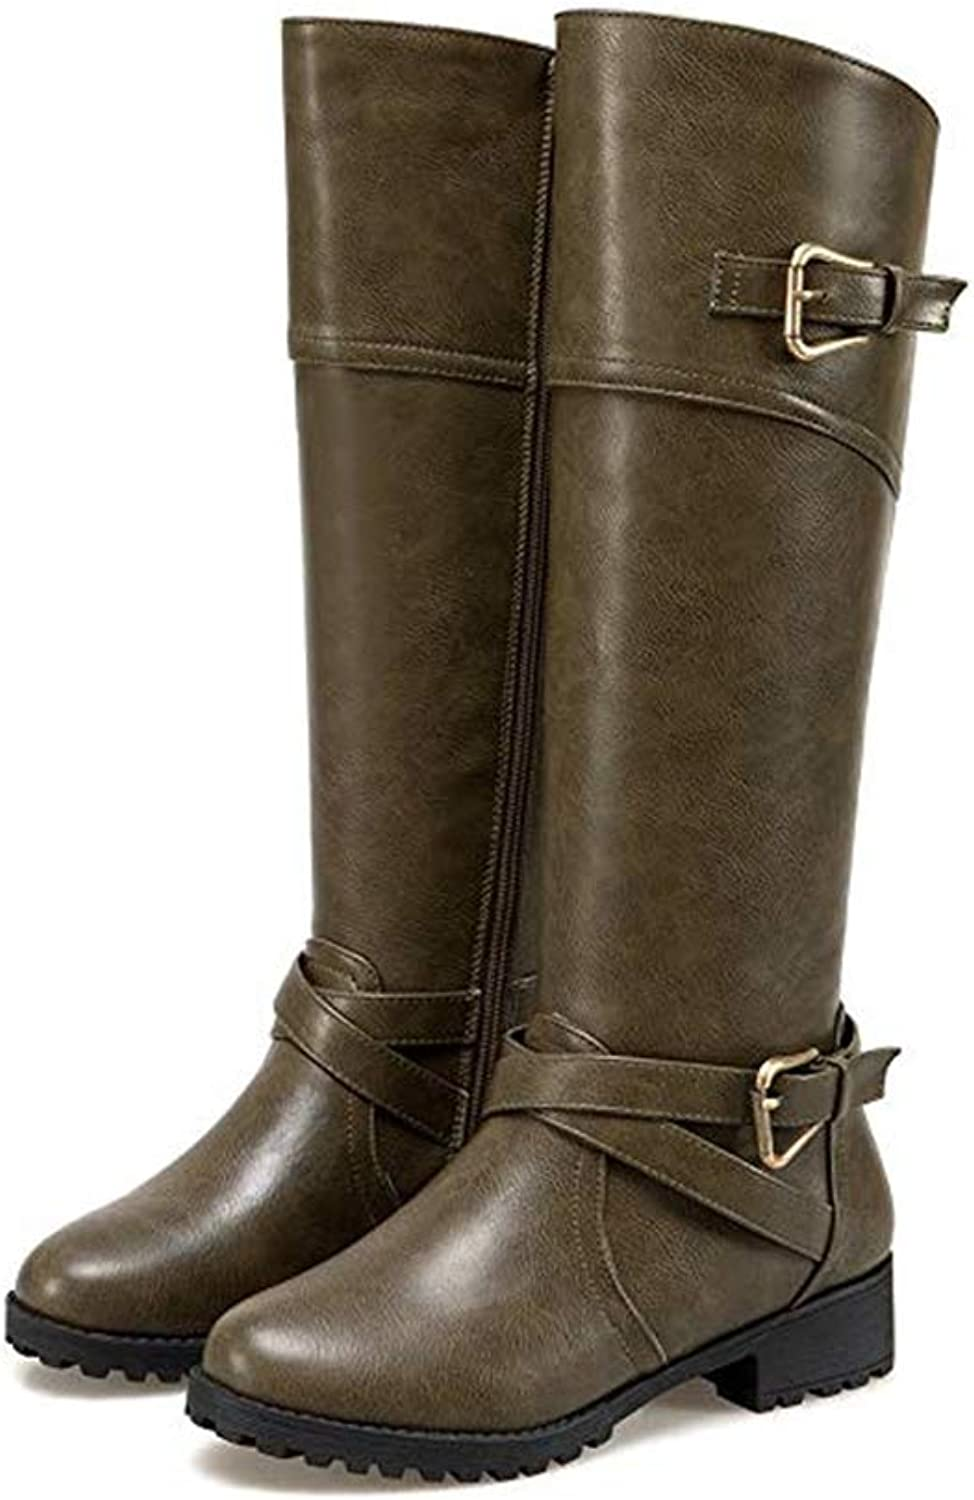 CHENSF Women's Knee High Riding Boots Wide Calf Leather Side Zip Buckle Long Boots